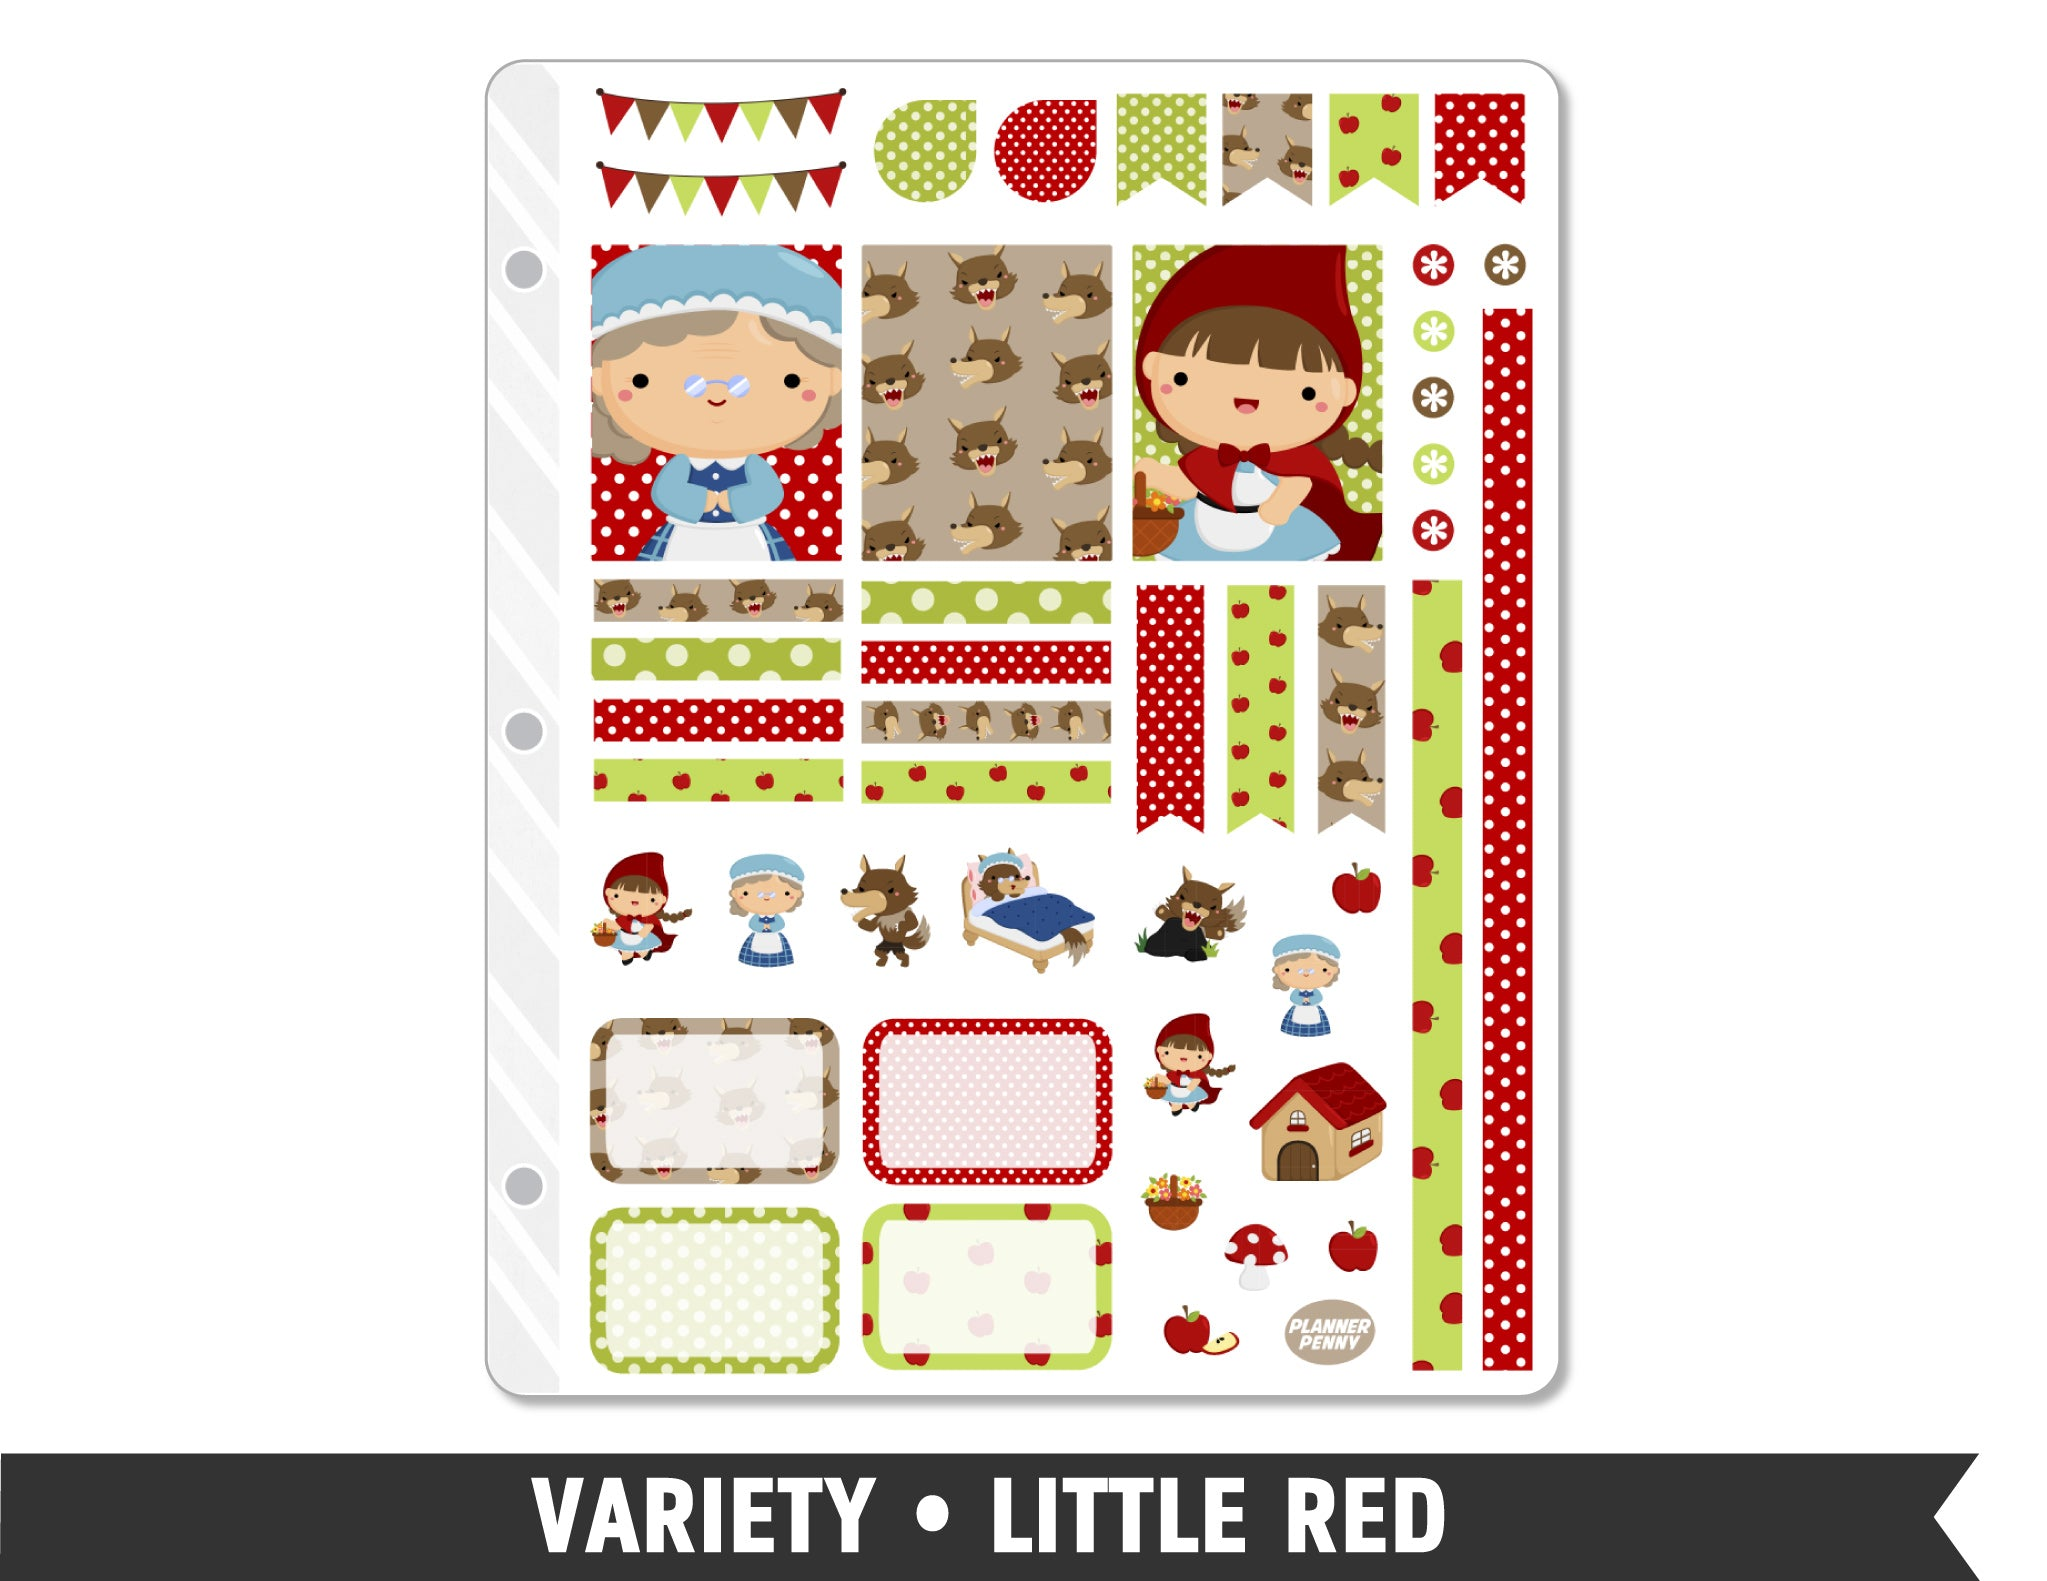 Variety • Little Red Weekly Spread Planner Stickers